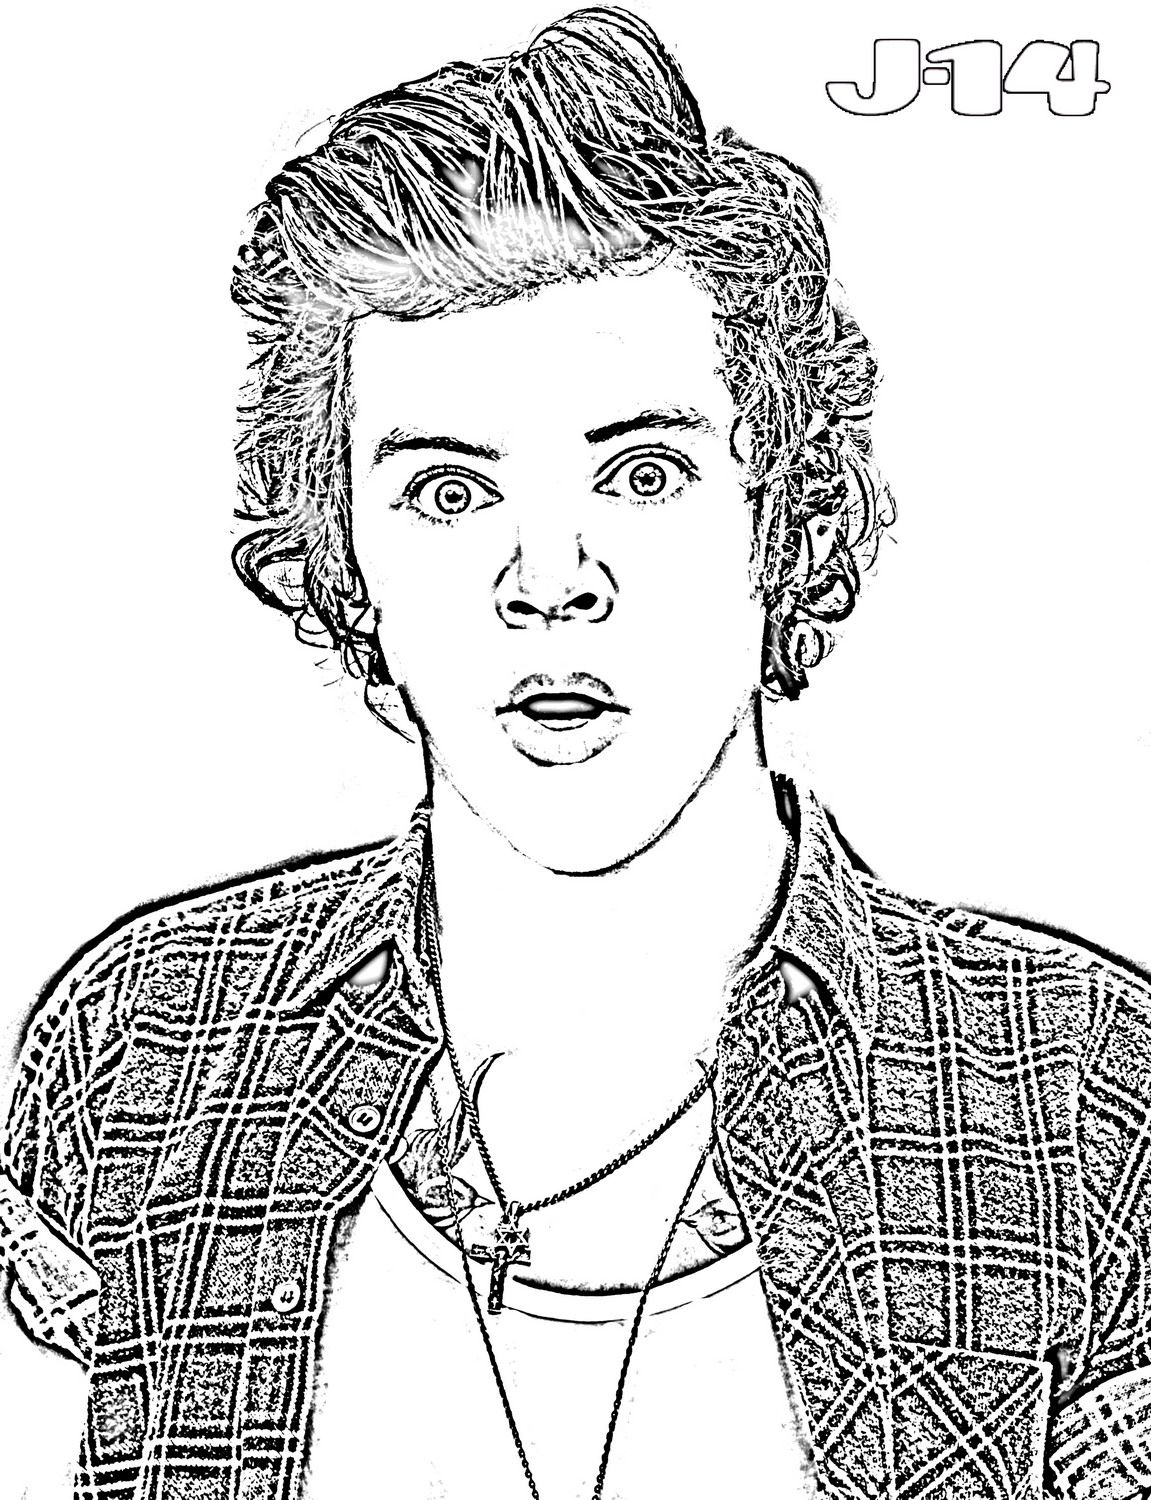 harry styles coloring page disegno di ritratto di harry styles da colorare acolorecom harry styles coloring page